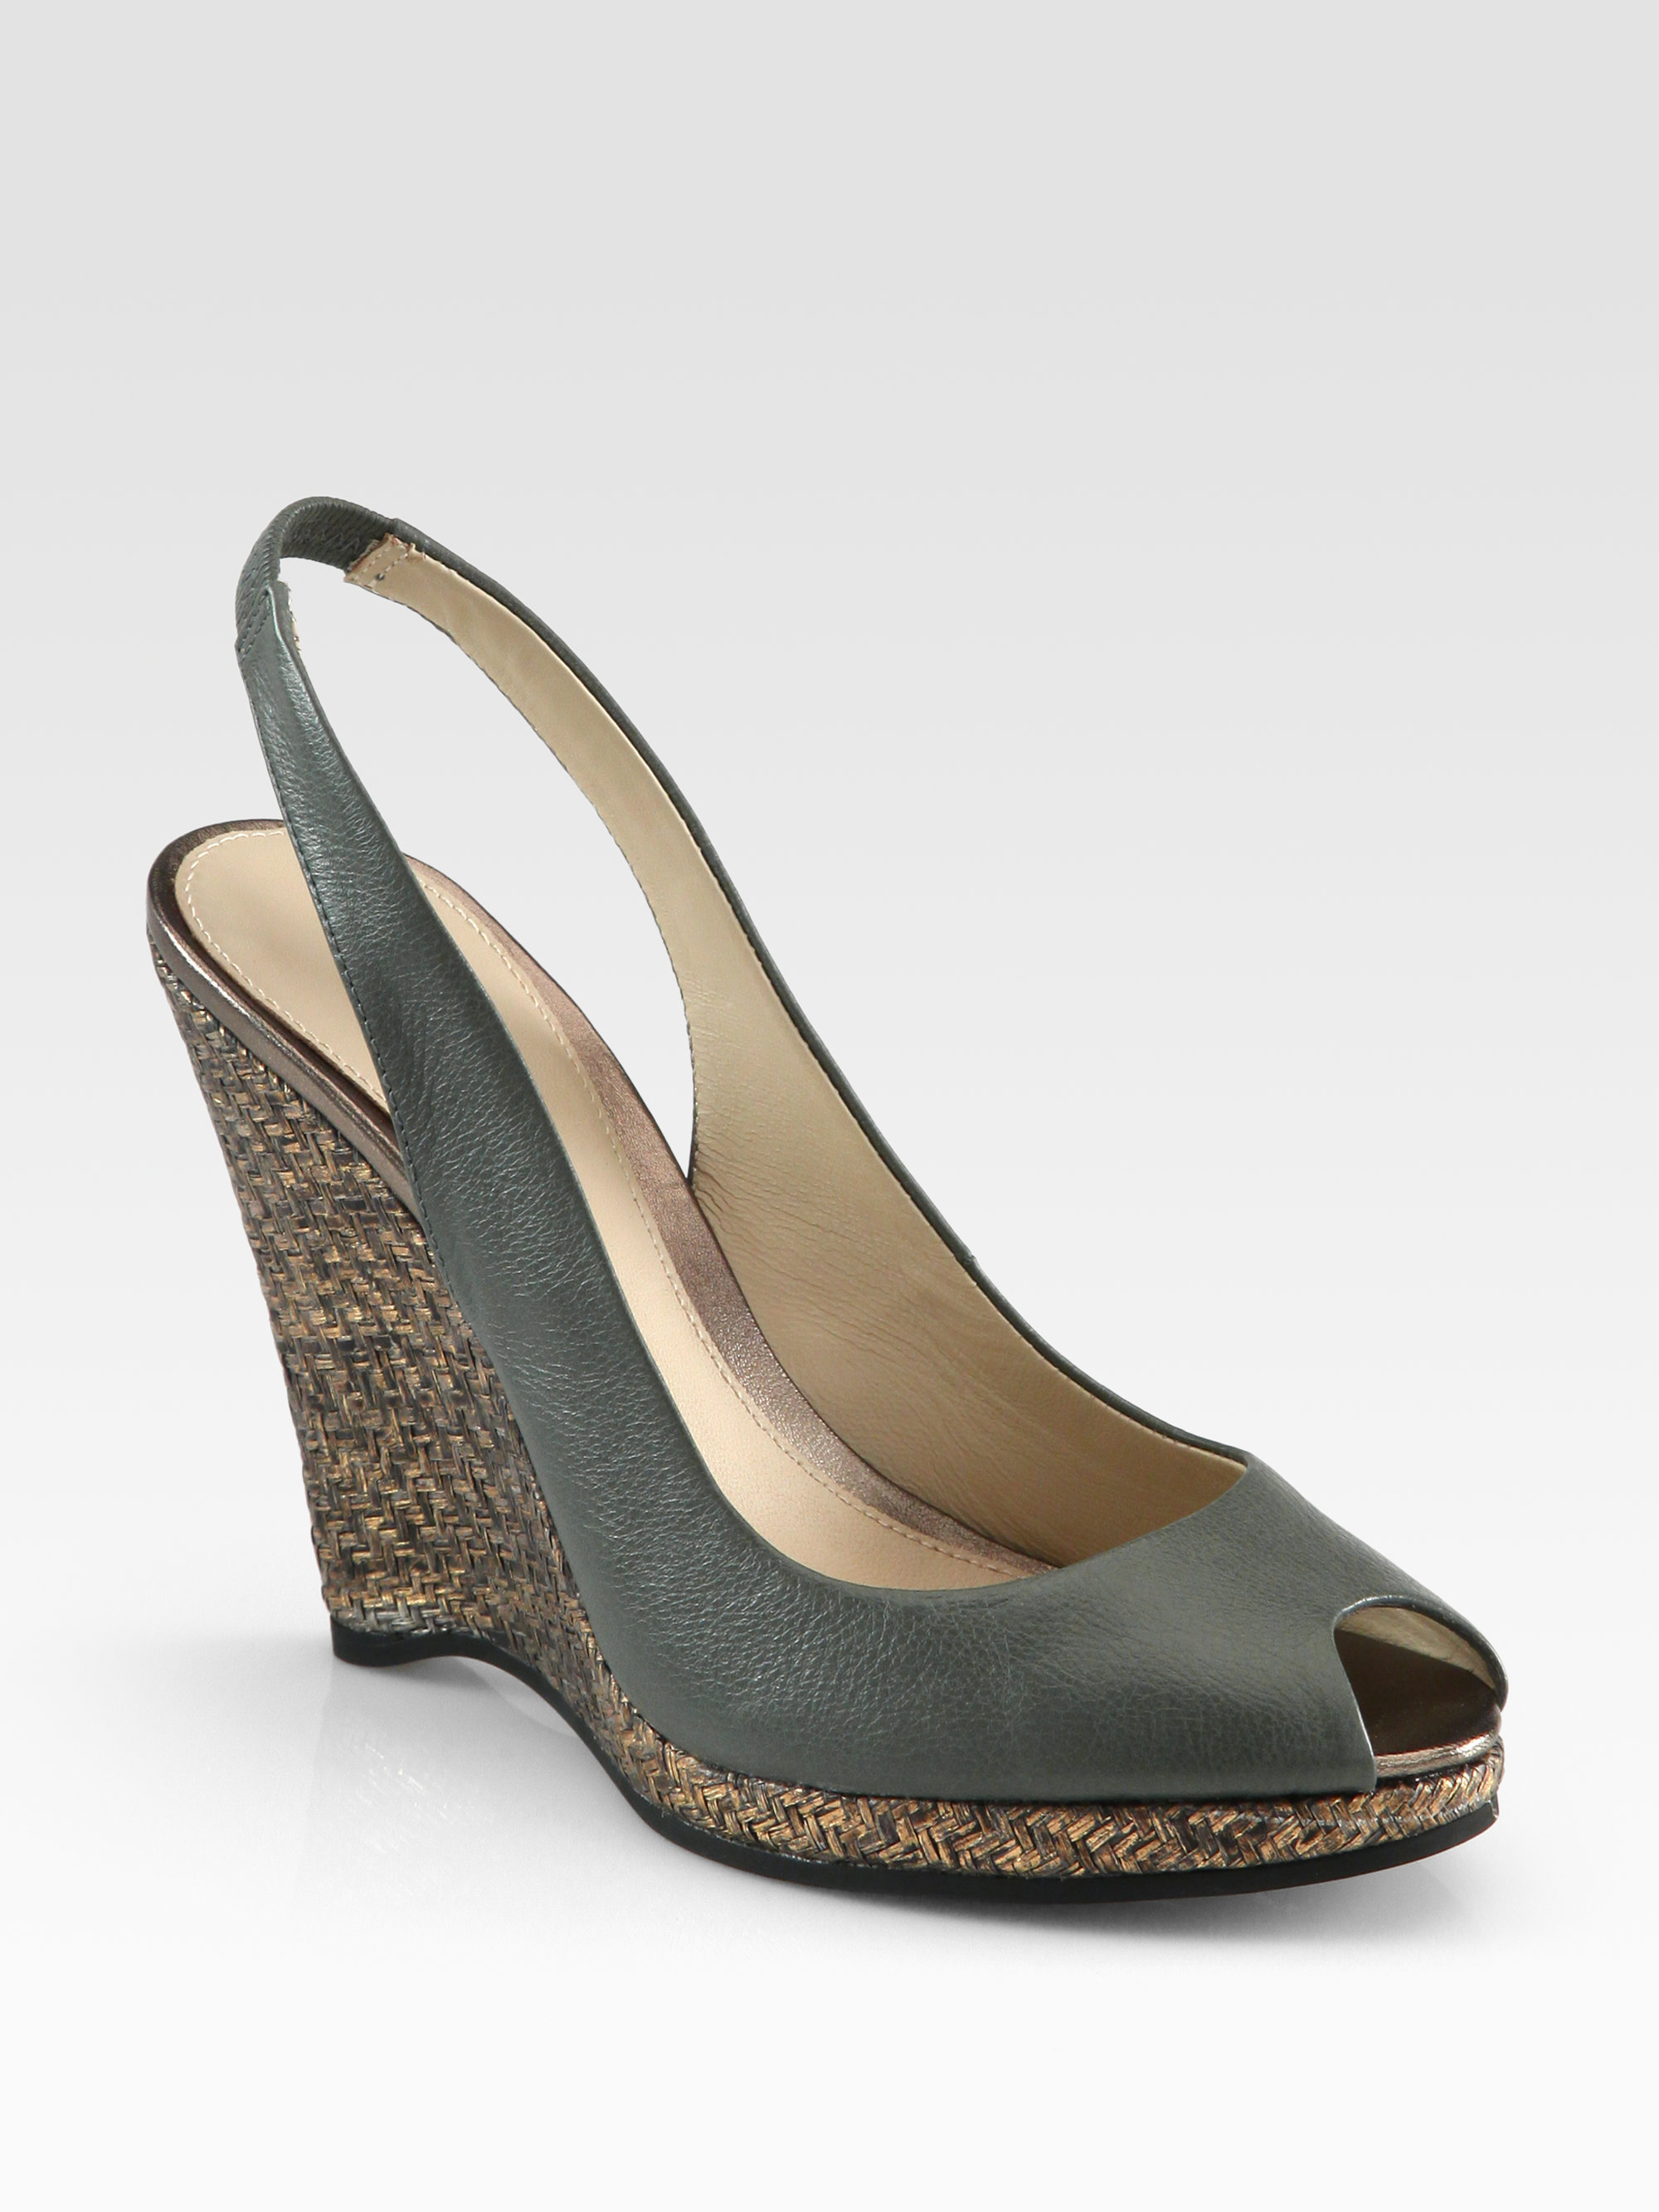 buy cheap low shipping fee Elie Tahari Metallic Wedge Sandals buy cheap ebay discount genuine shopping online outlet sale o5HcJidqH5